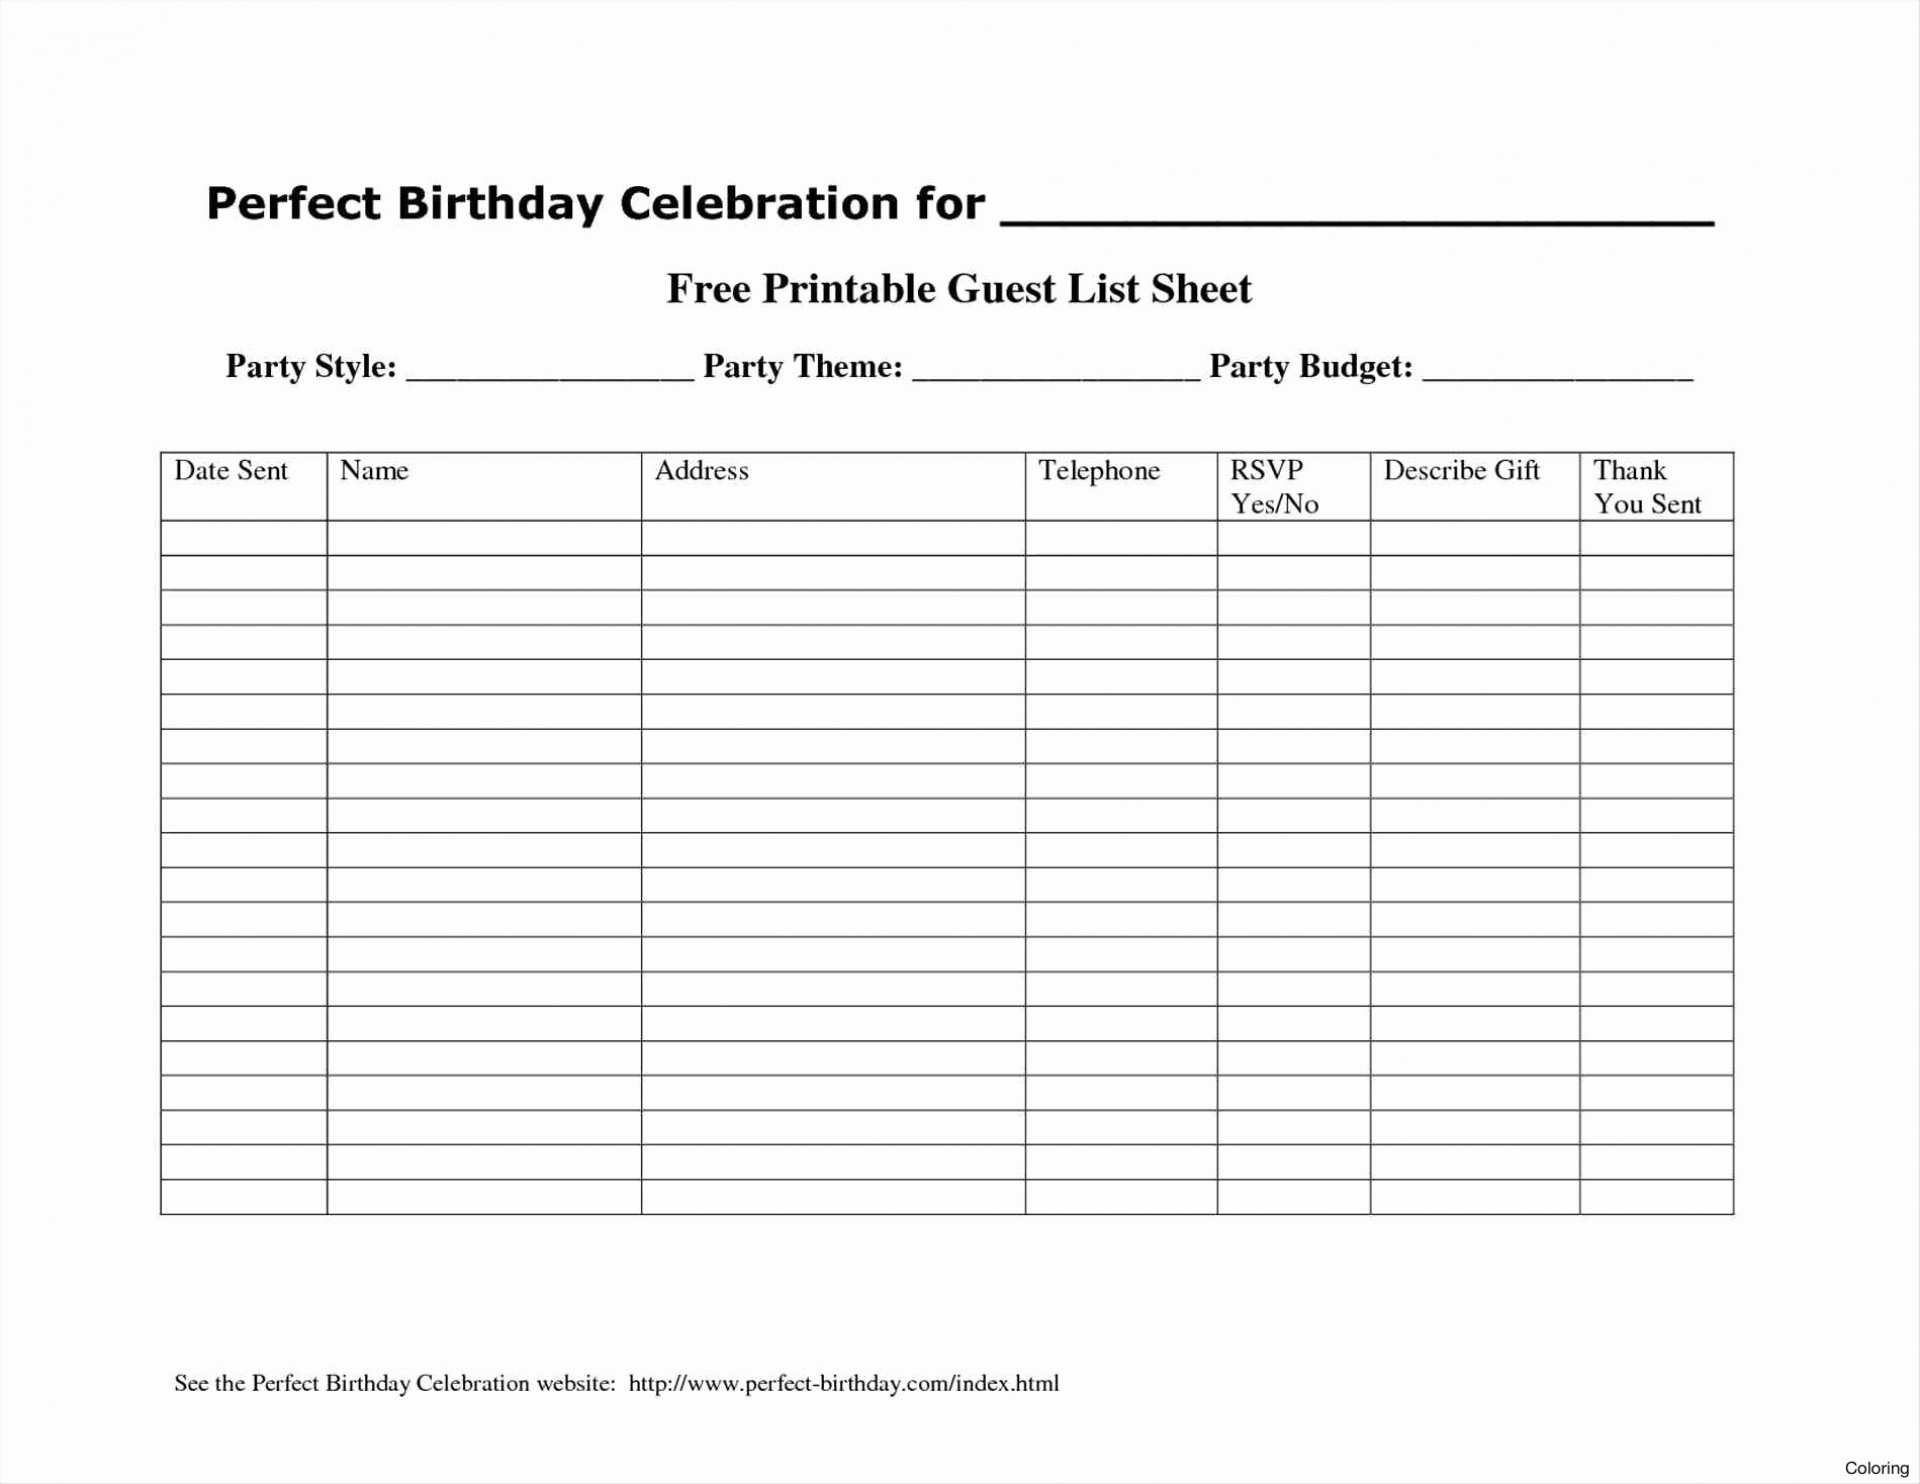 012 Template Ideas Birthday Guest List Sensational Party Pdf Excel - Free Printable Birthday Guest List